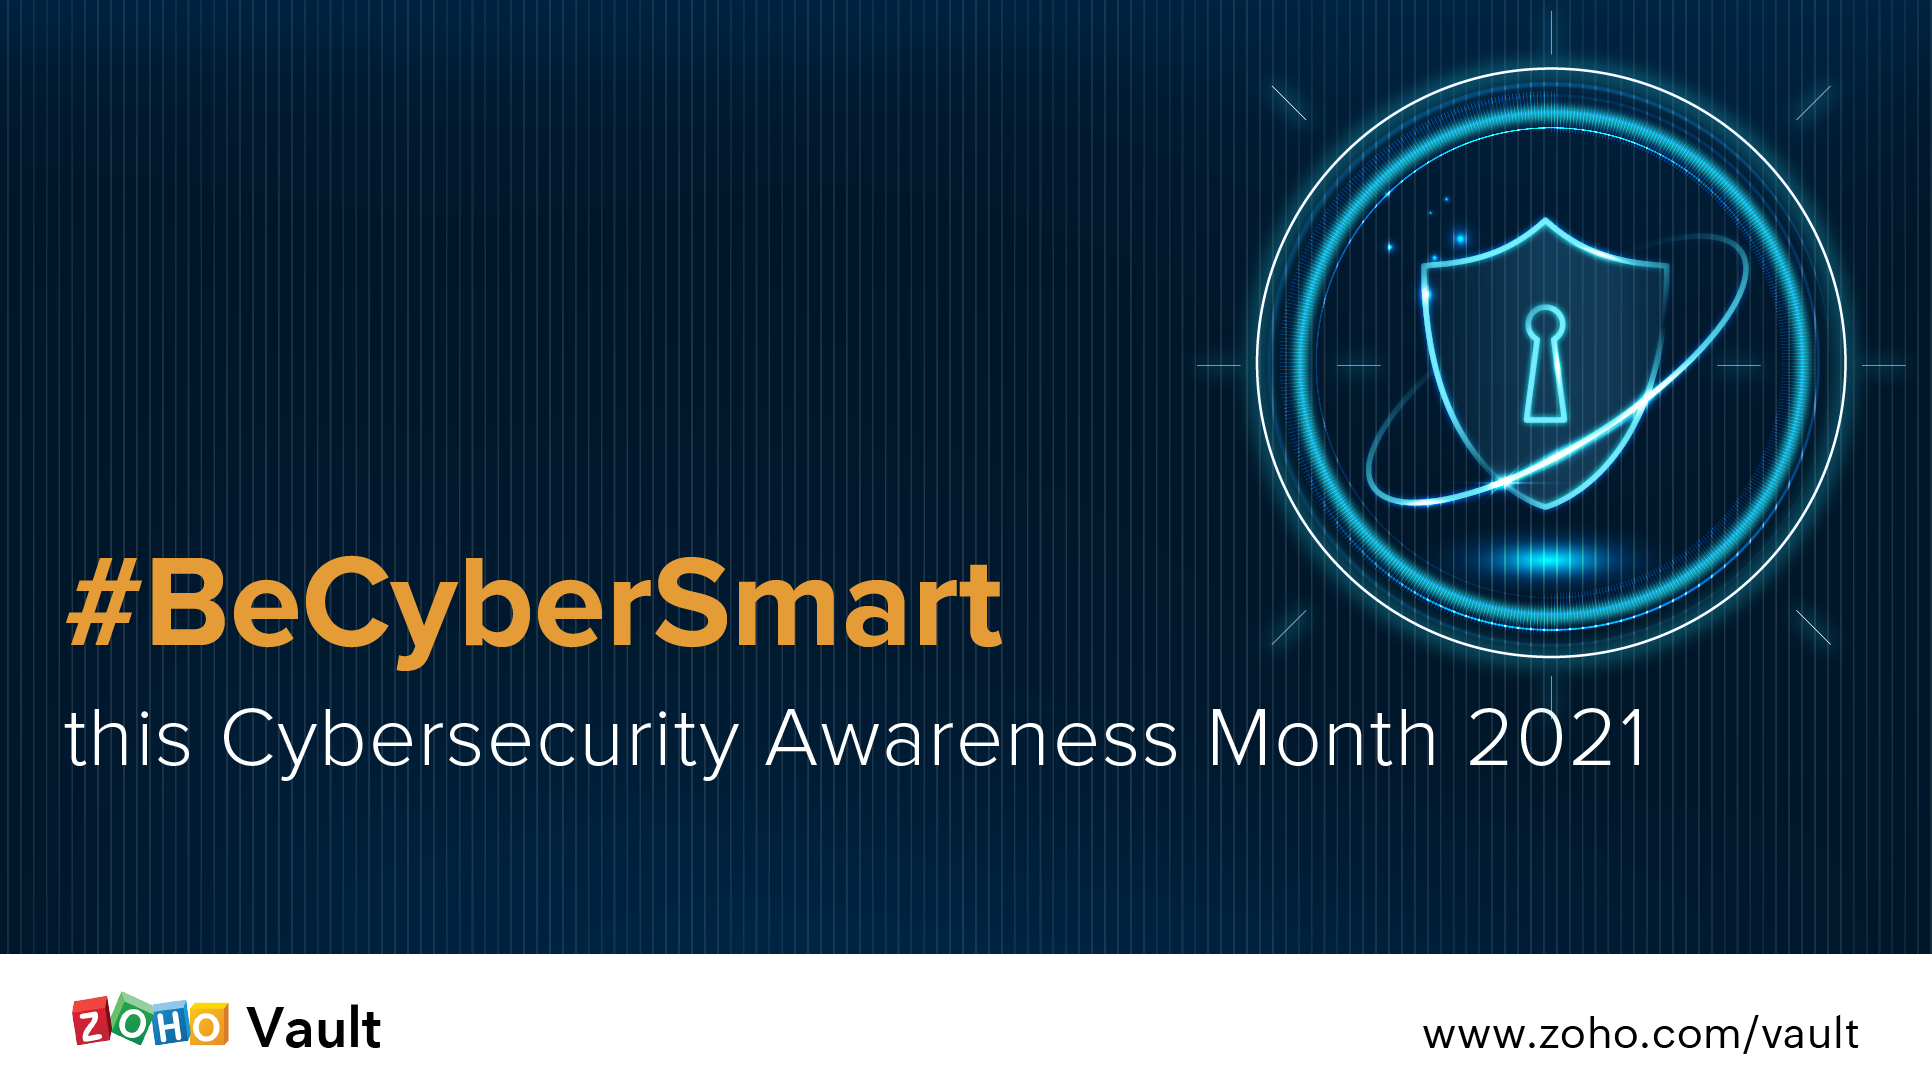 #BeCyberSmart this Cybersecurity Awareness Month 2021